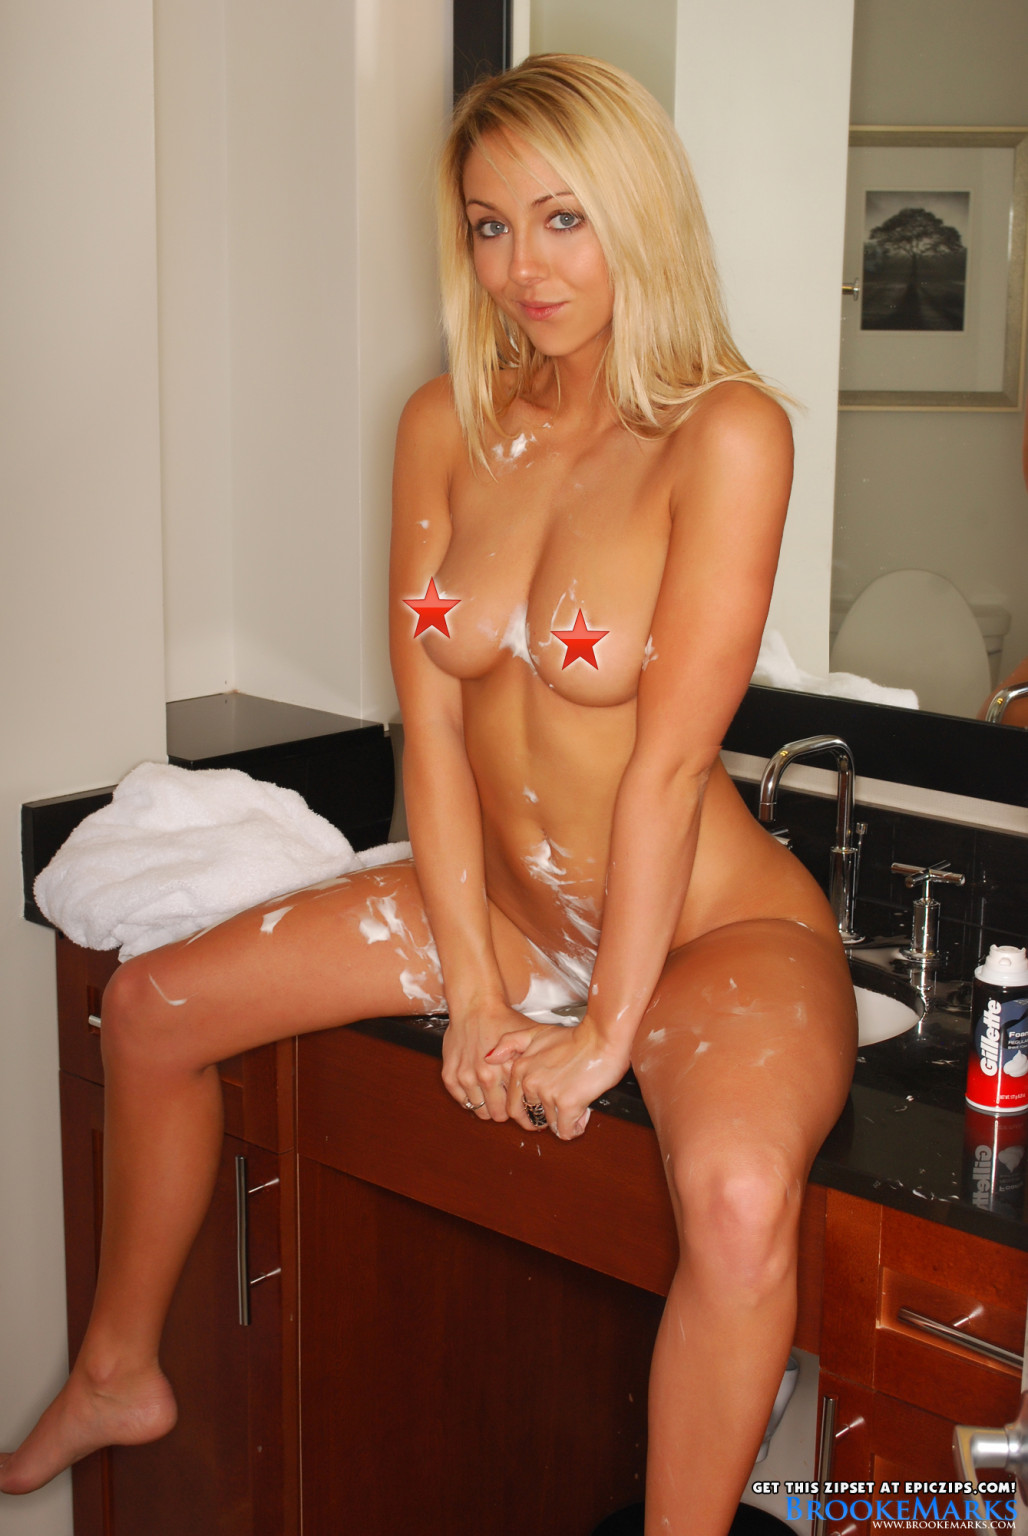 Brooke marks shaves the kitty